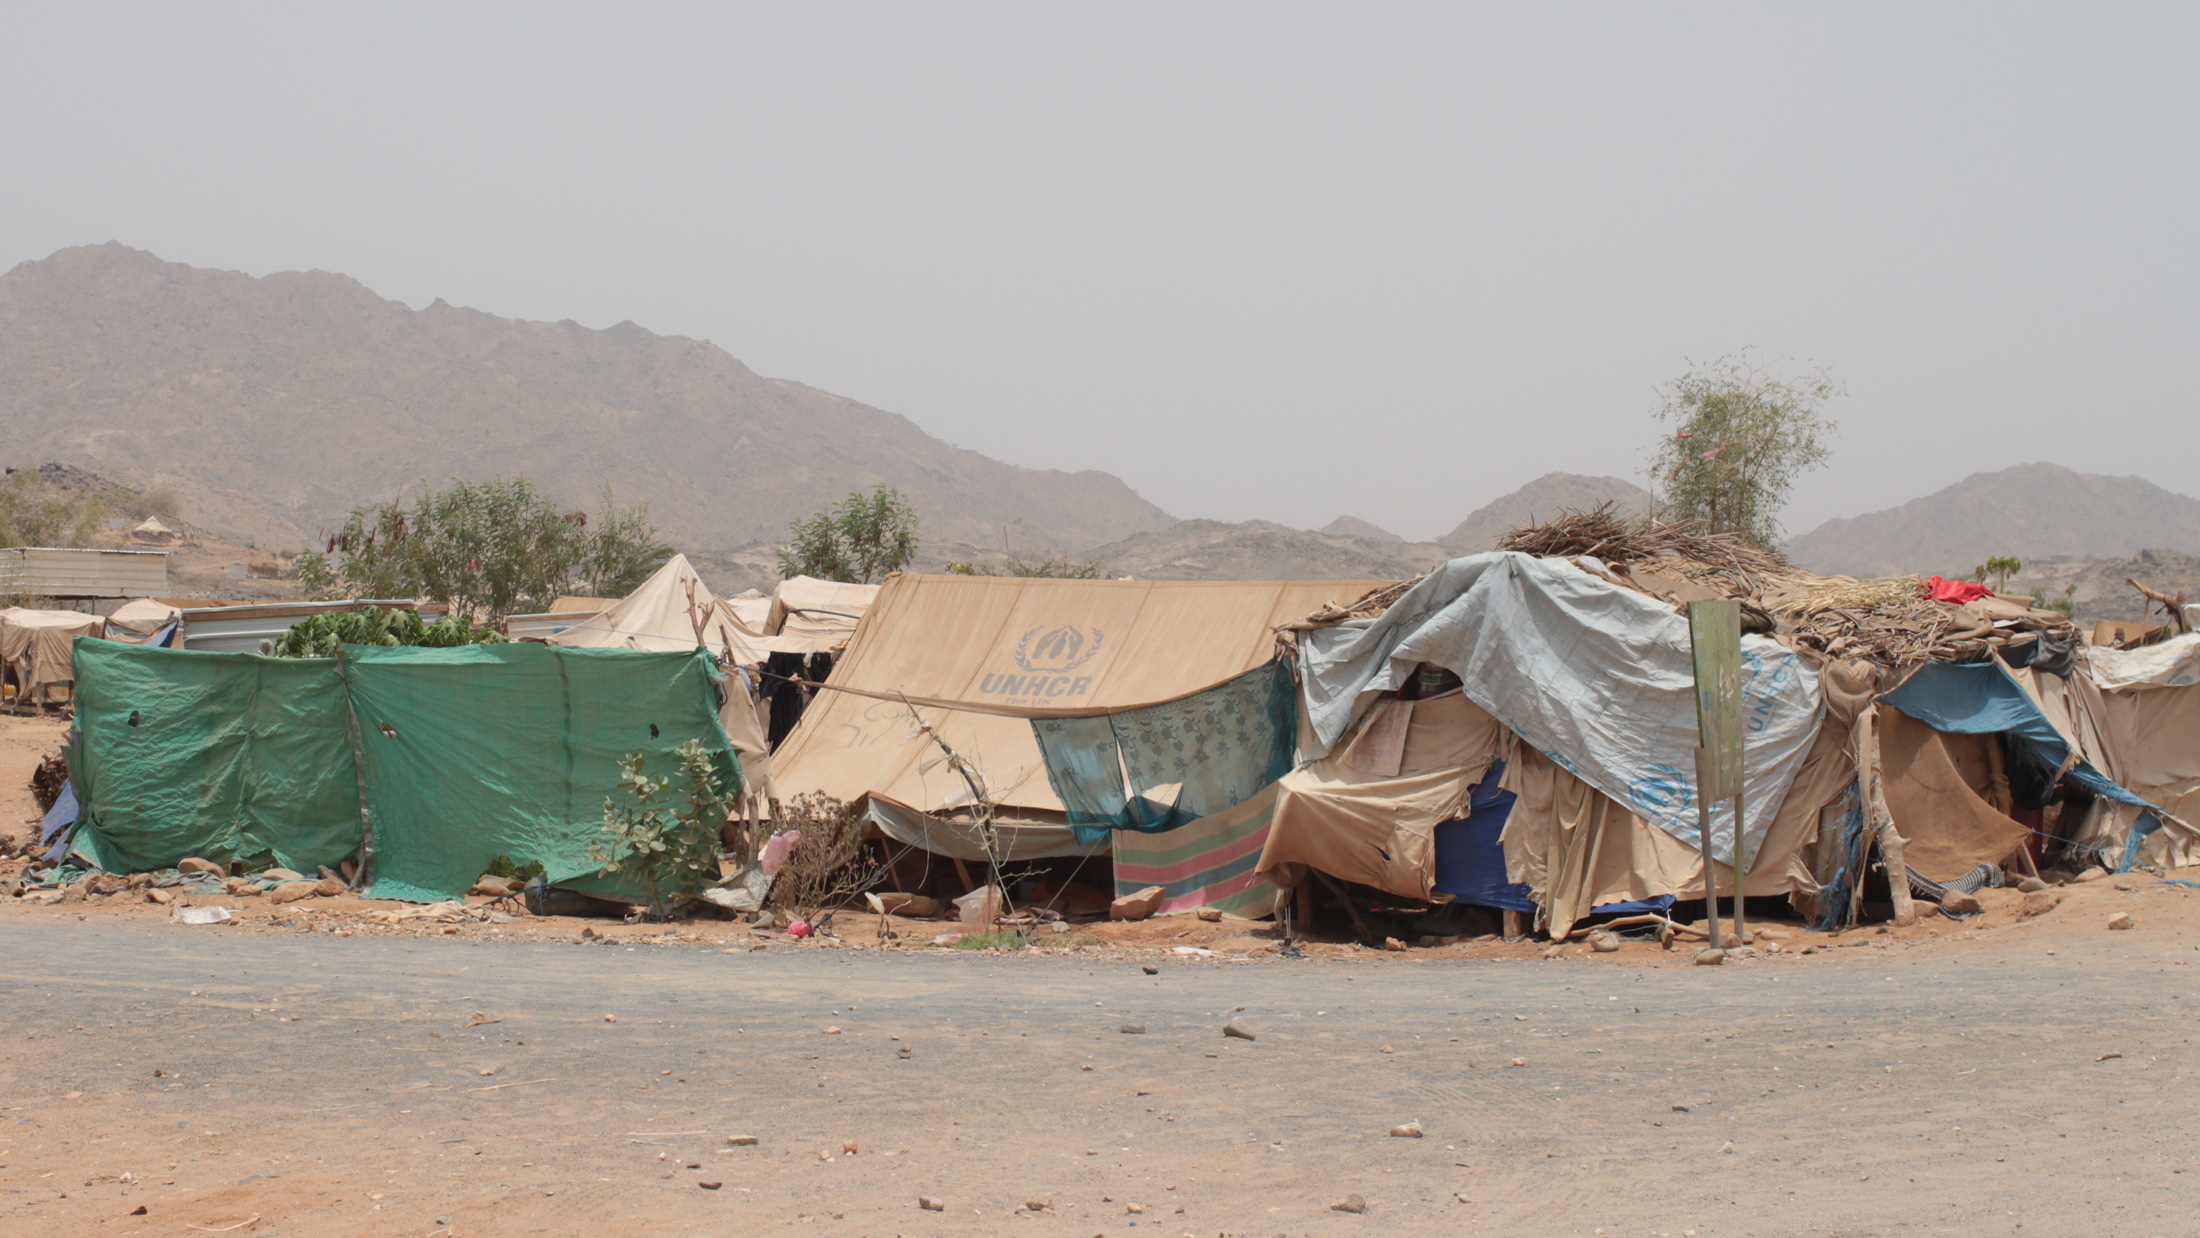 Mazraq camp, near Haradh for IDPs displaced by the six conflicts in northern Yemen between Houthi rebels and government forces